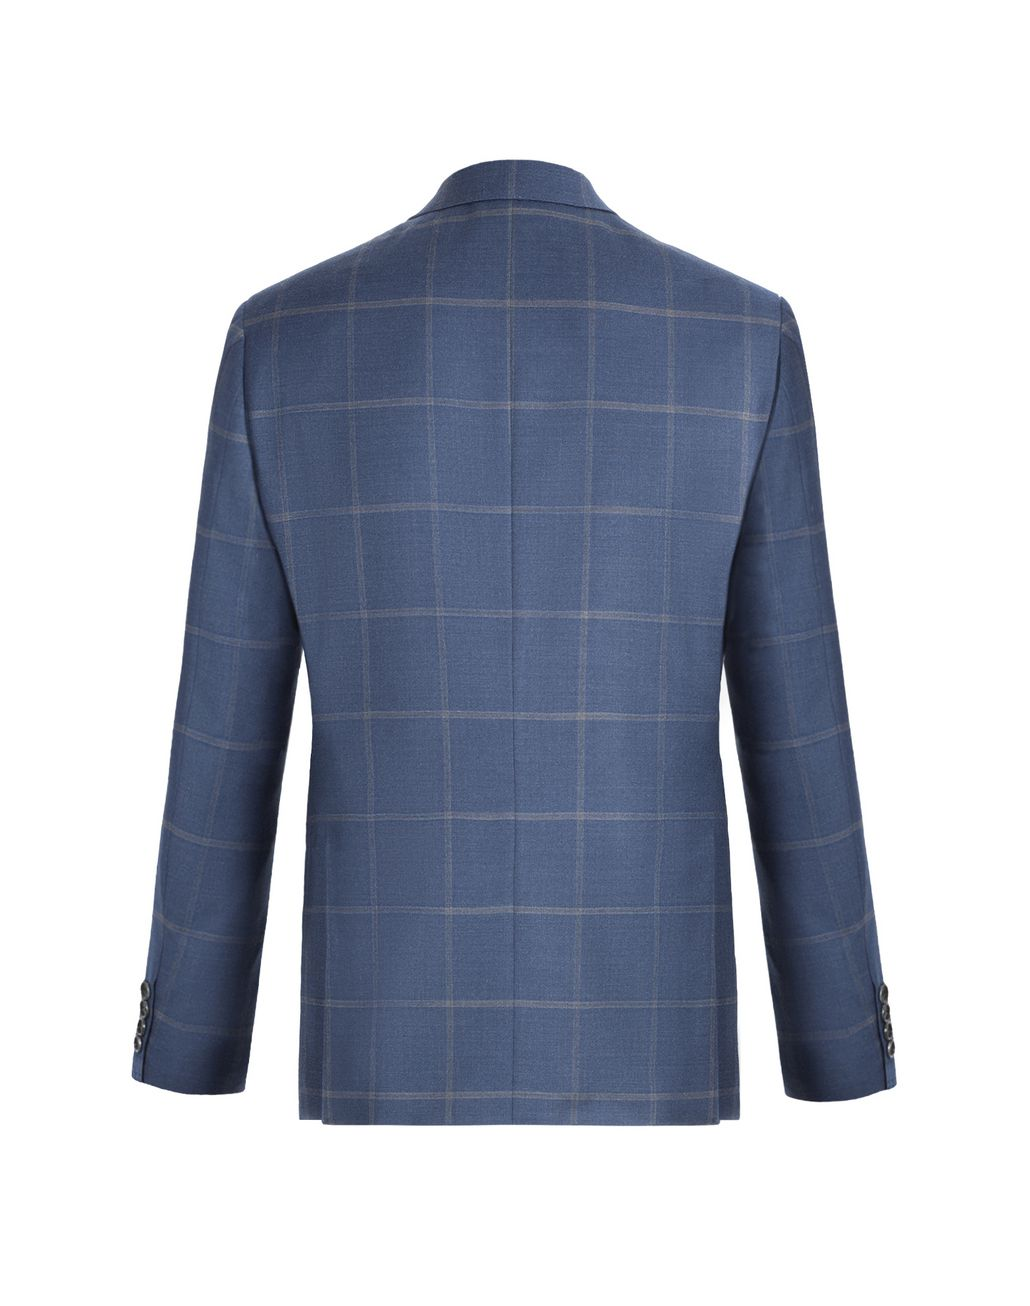 BRIONI Blue and Gray Overcheck Ravello Jacket Jackets U d